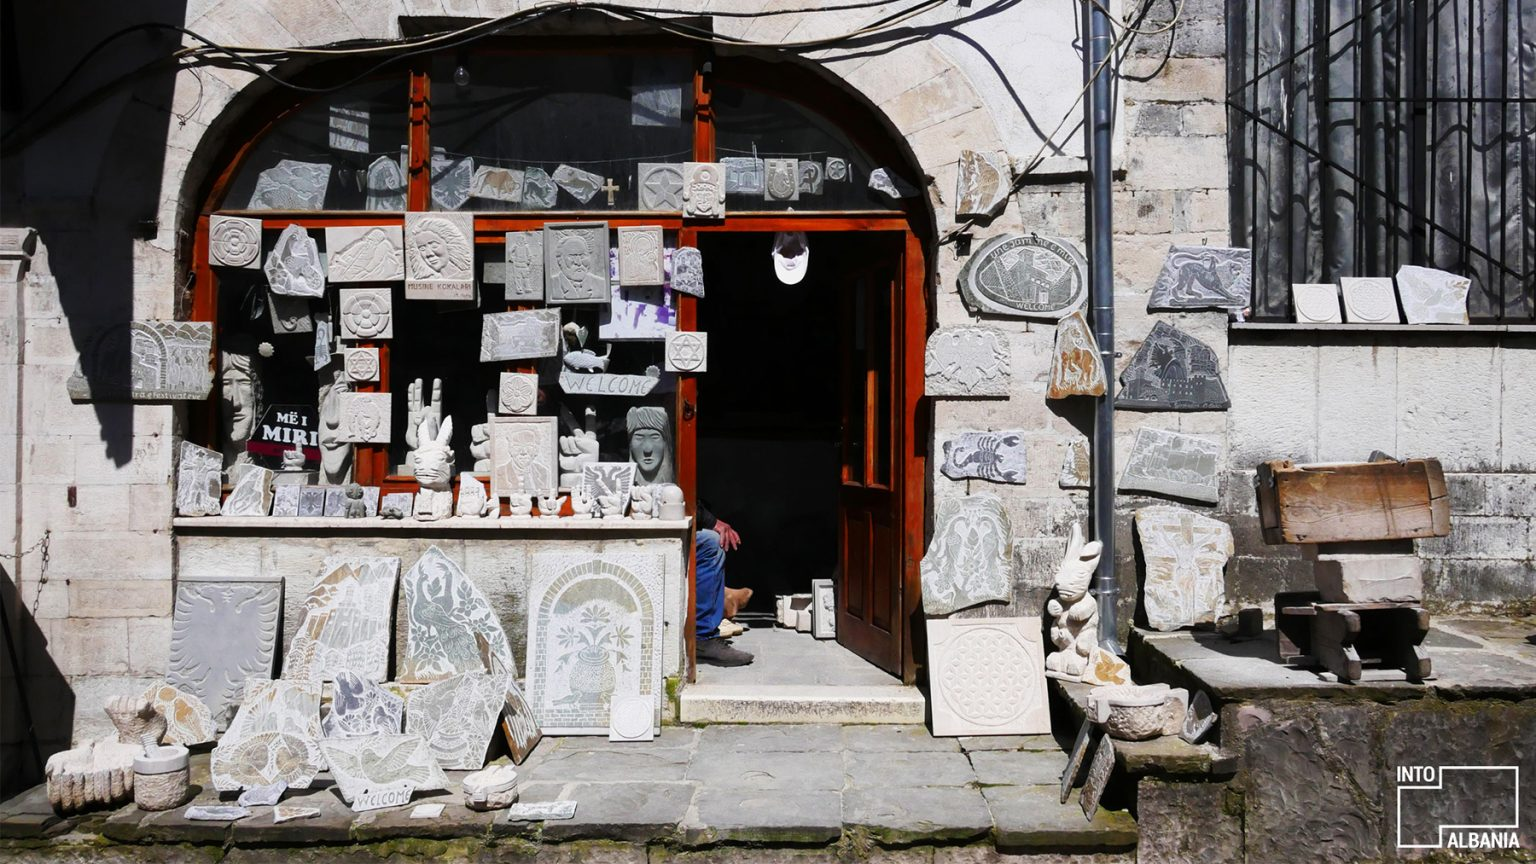 Traditional stone carvings, Old Bazaar in Gjirokastra, photo by IntoAlbania